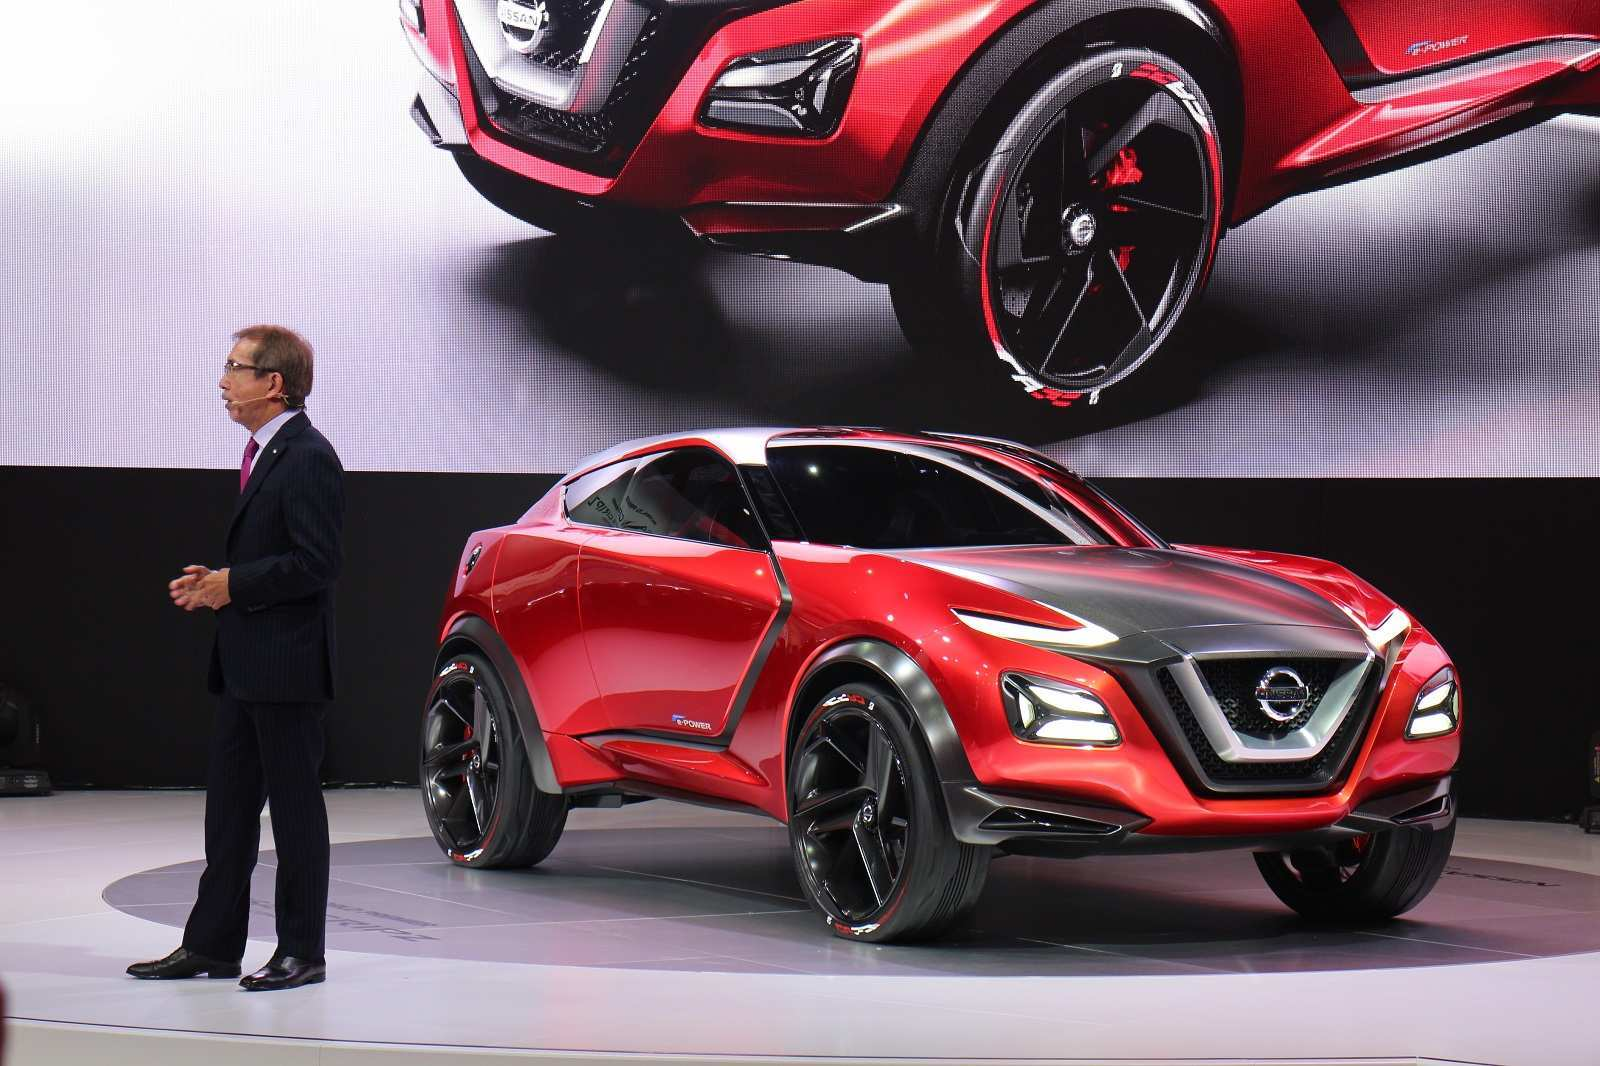 94 Concept of 2019 Nissan Gripz Specs with 2019 Nissan Gripz